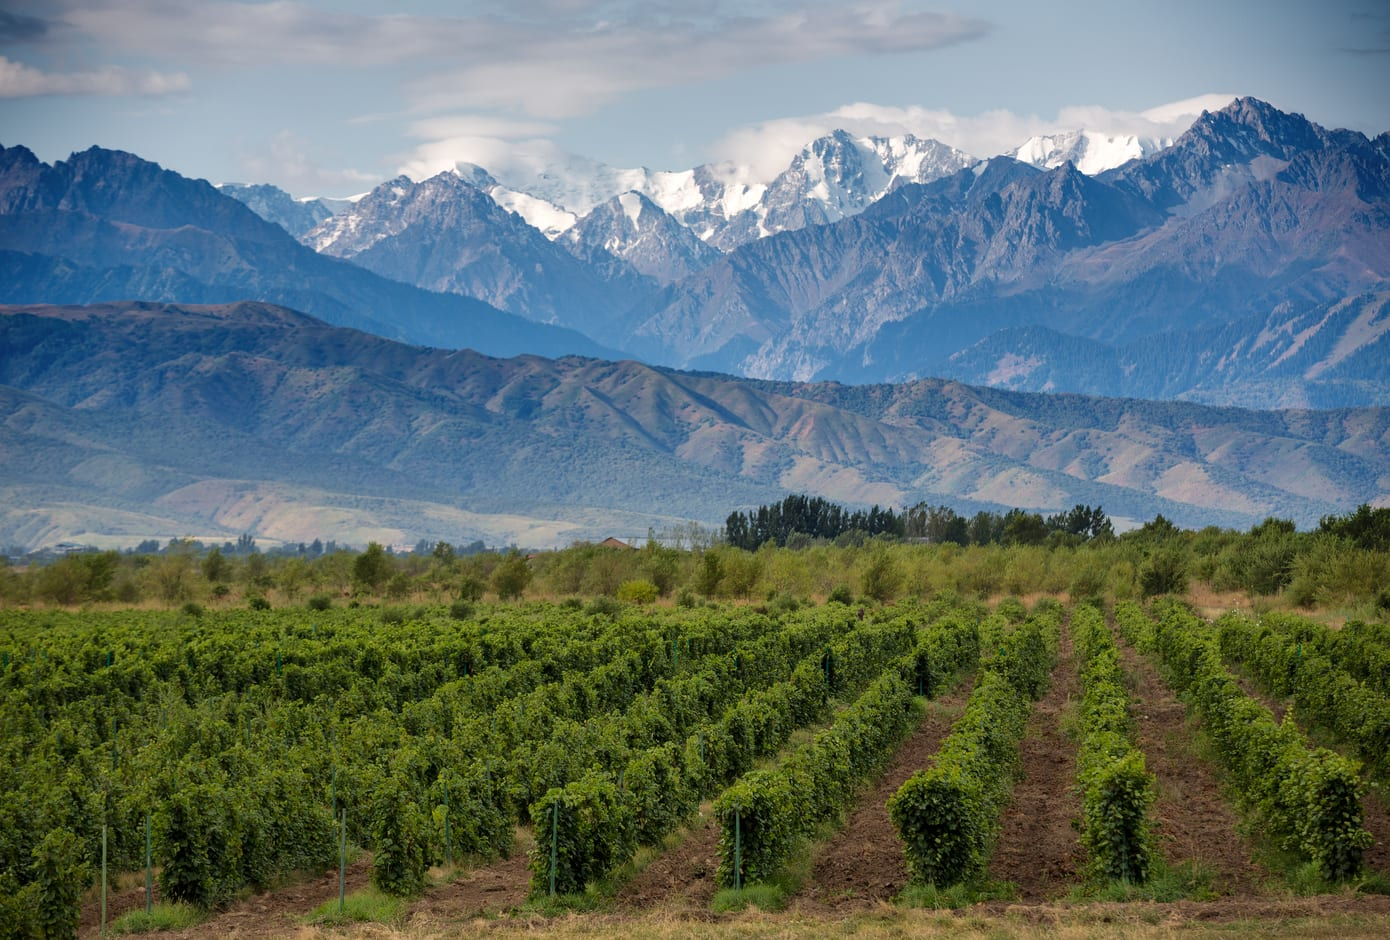 A Vineyard framed by snow-capped mountains in Mendoza, Argentina.